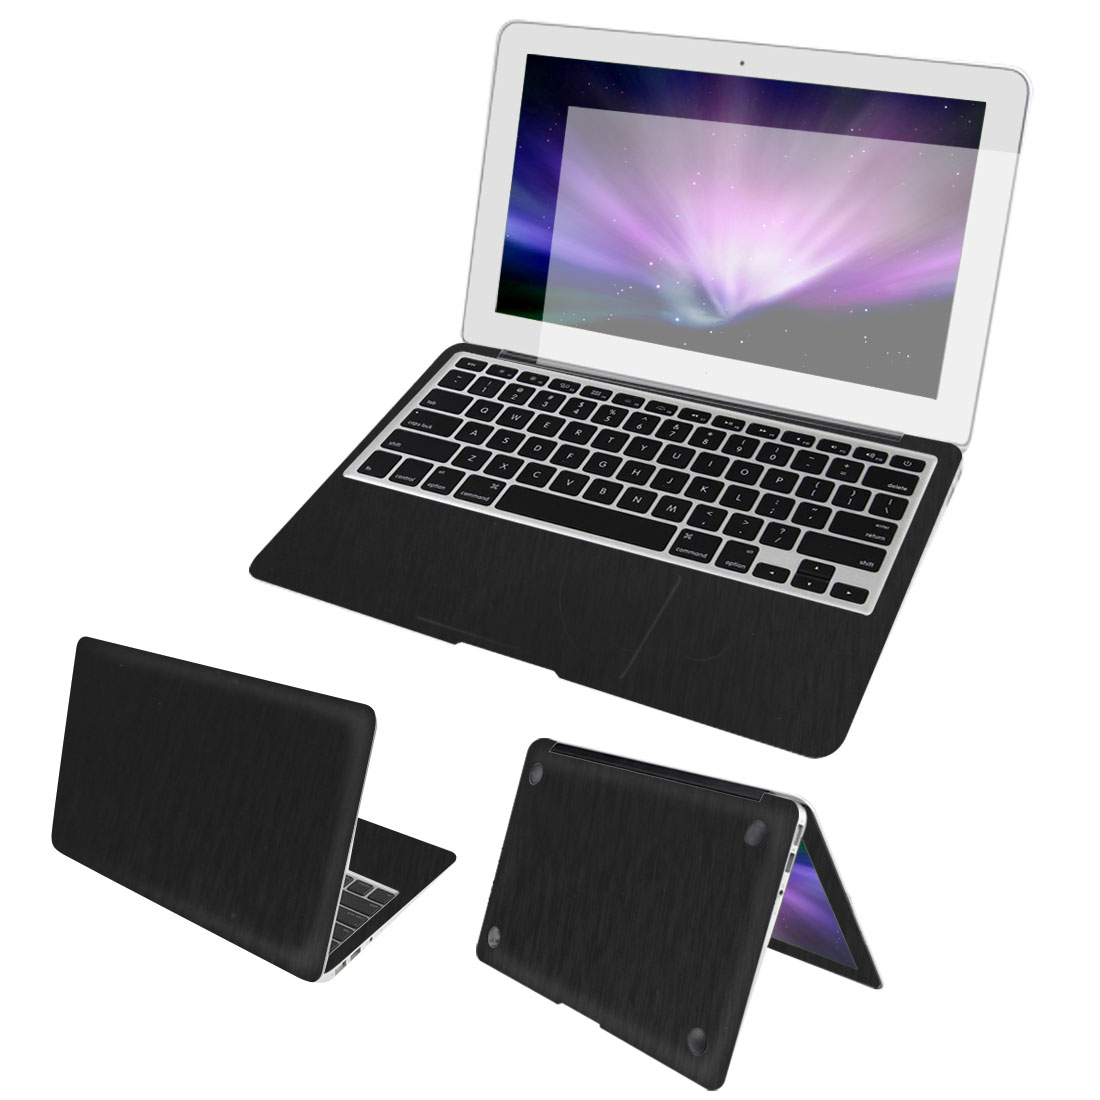 Black Full Body Wrap Protector Decal Skin Cover Dust Stopper for Macbook Pro 15""